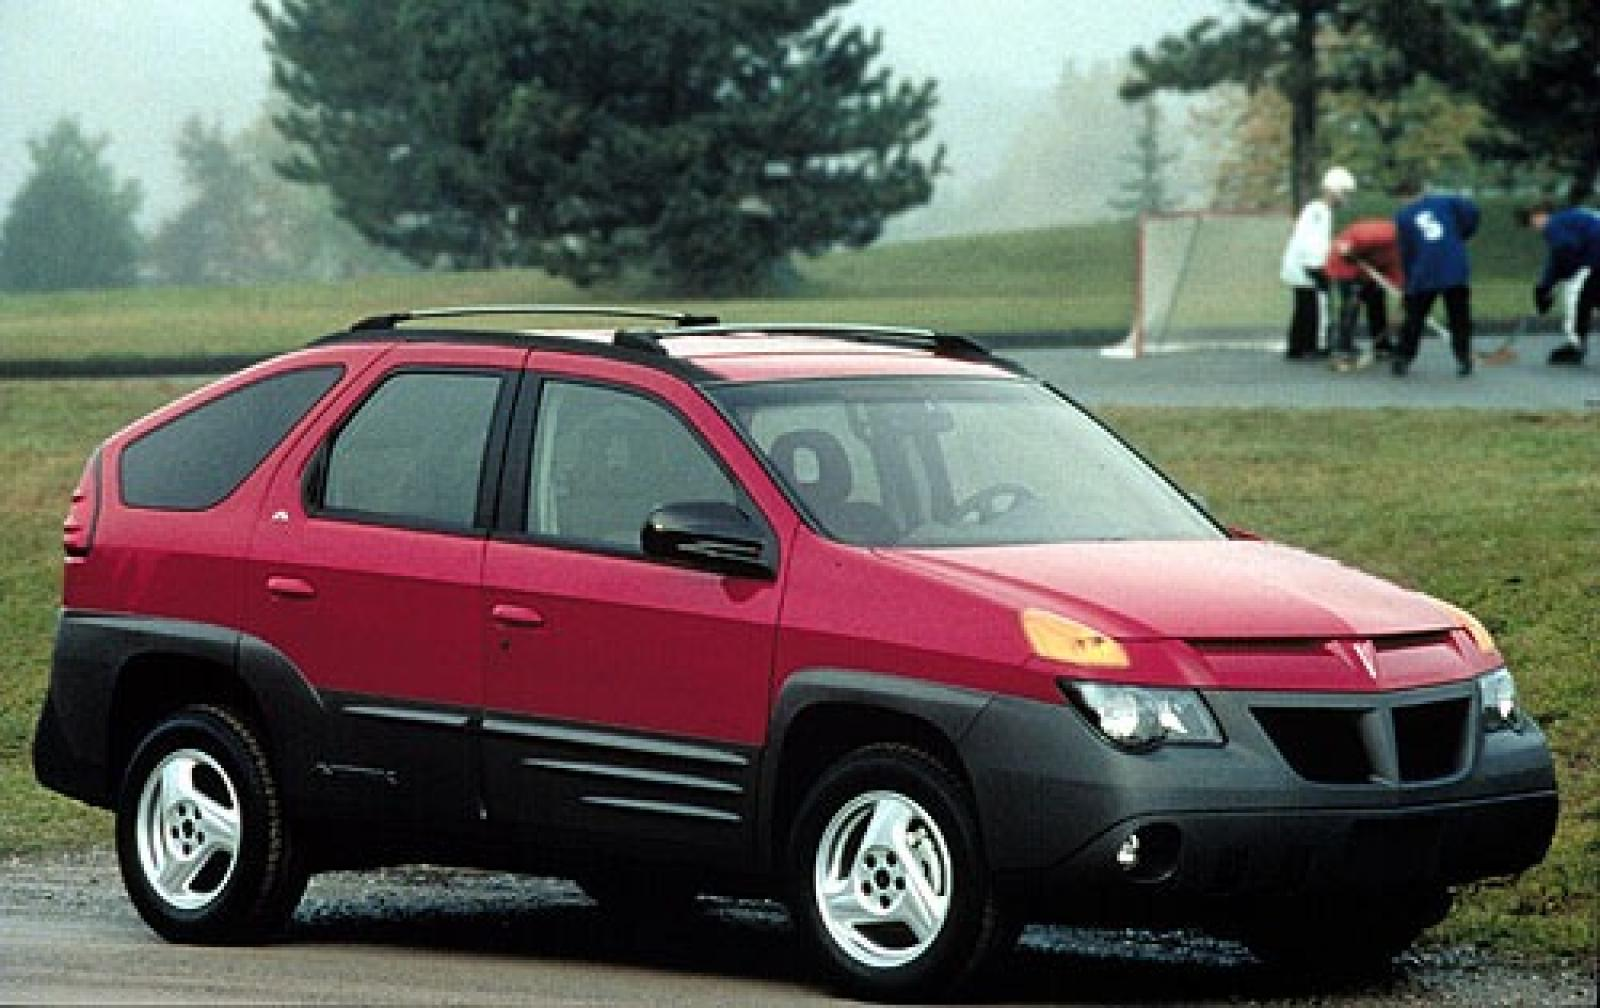 2005 pontiac aztek information and photos zombiedrive. Black Bedroom Furniture Sets. Home Design Ideas